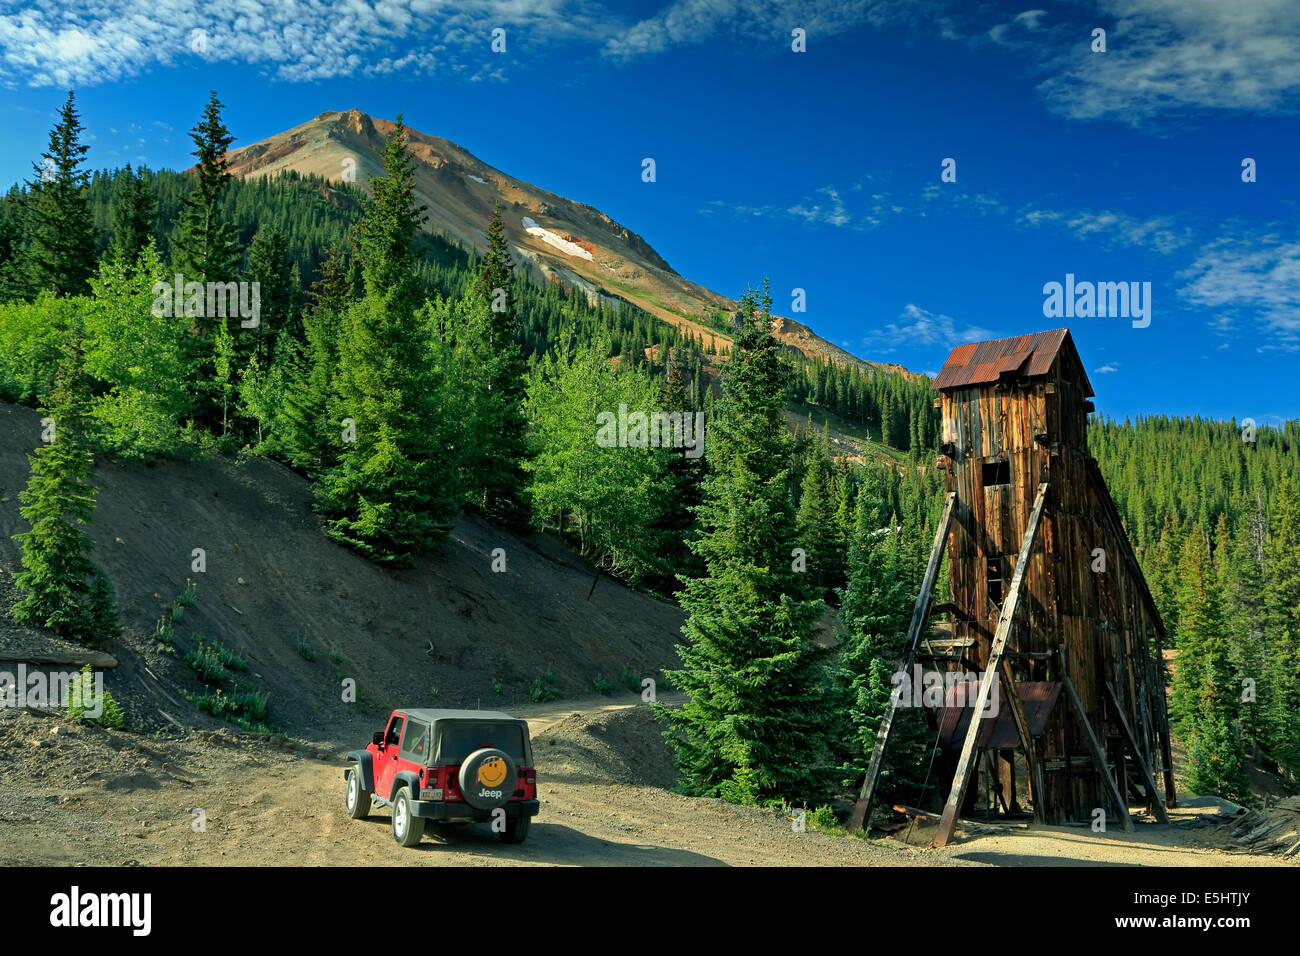 Jeep, shaft house and Red Mountain No. 3, Yankee Girl Mine, near Ouray, Colorado USA - Stock Image